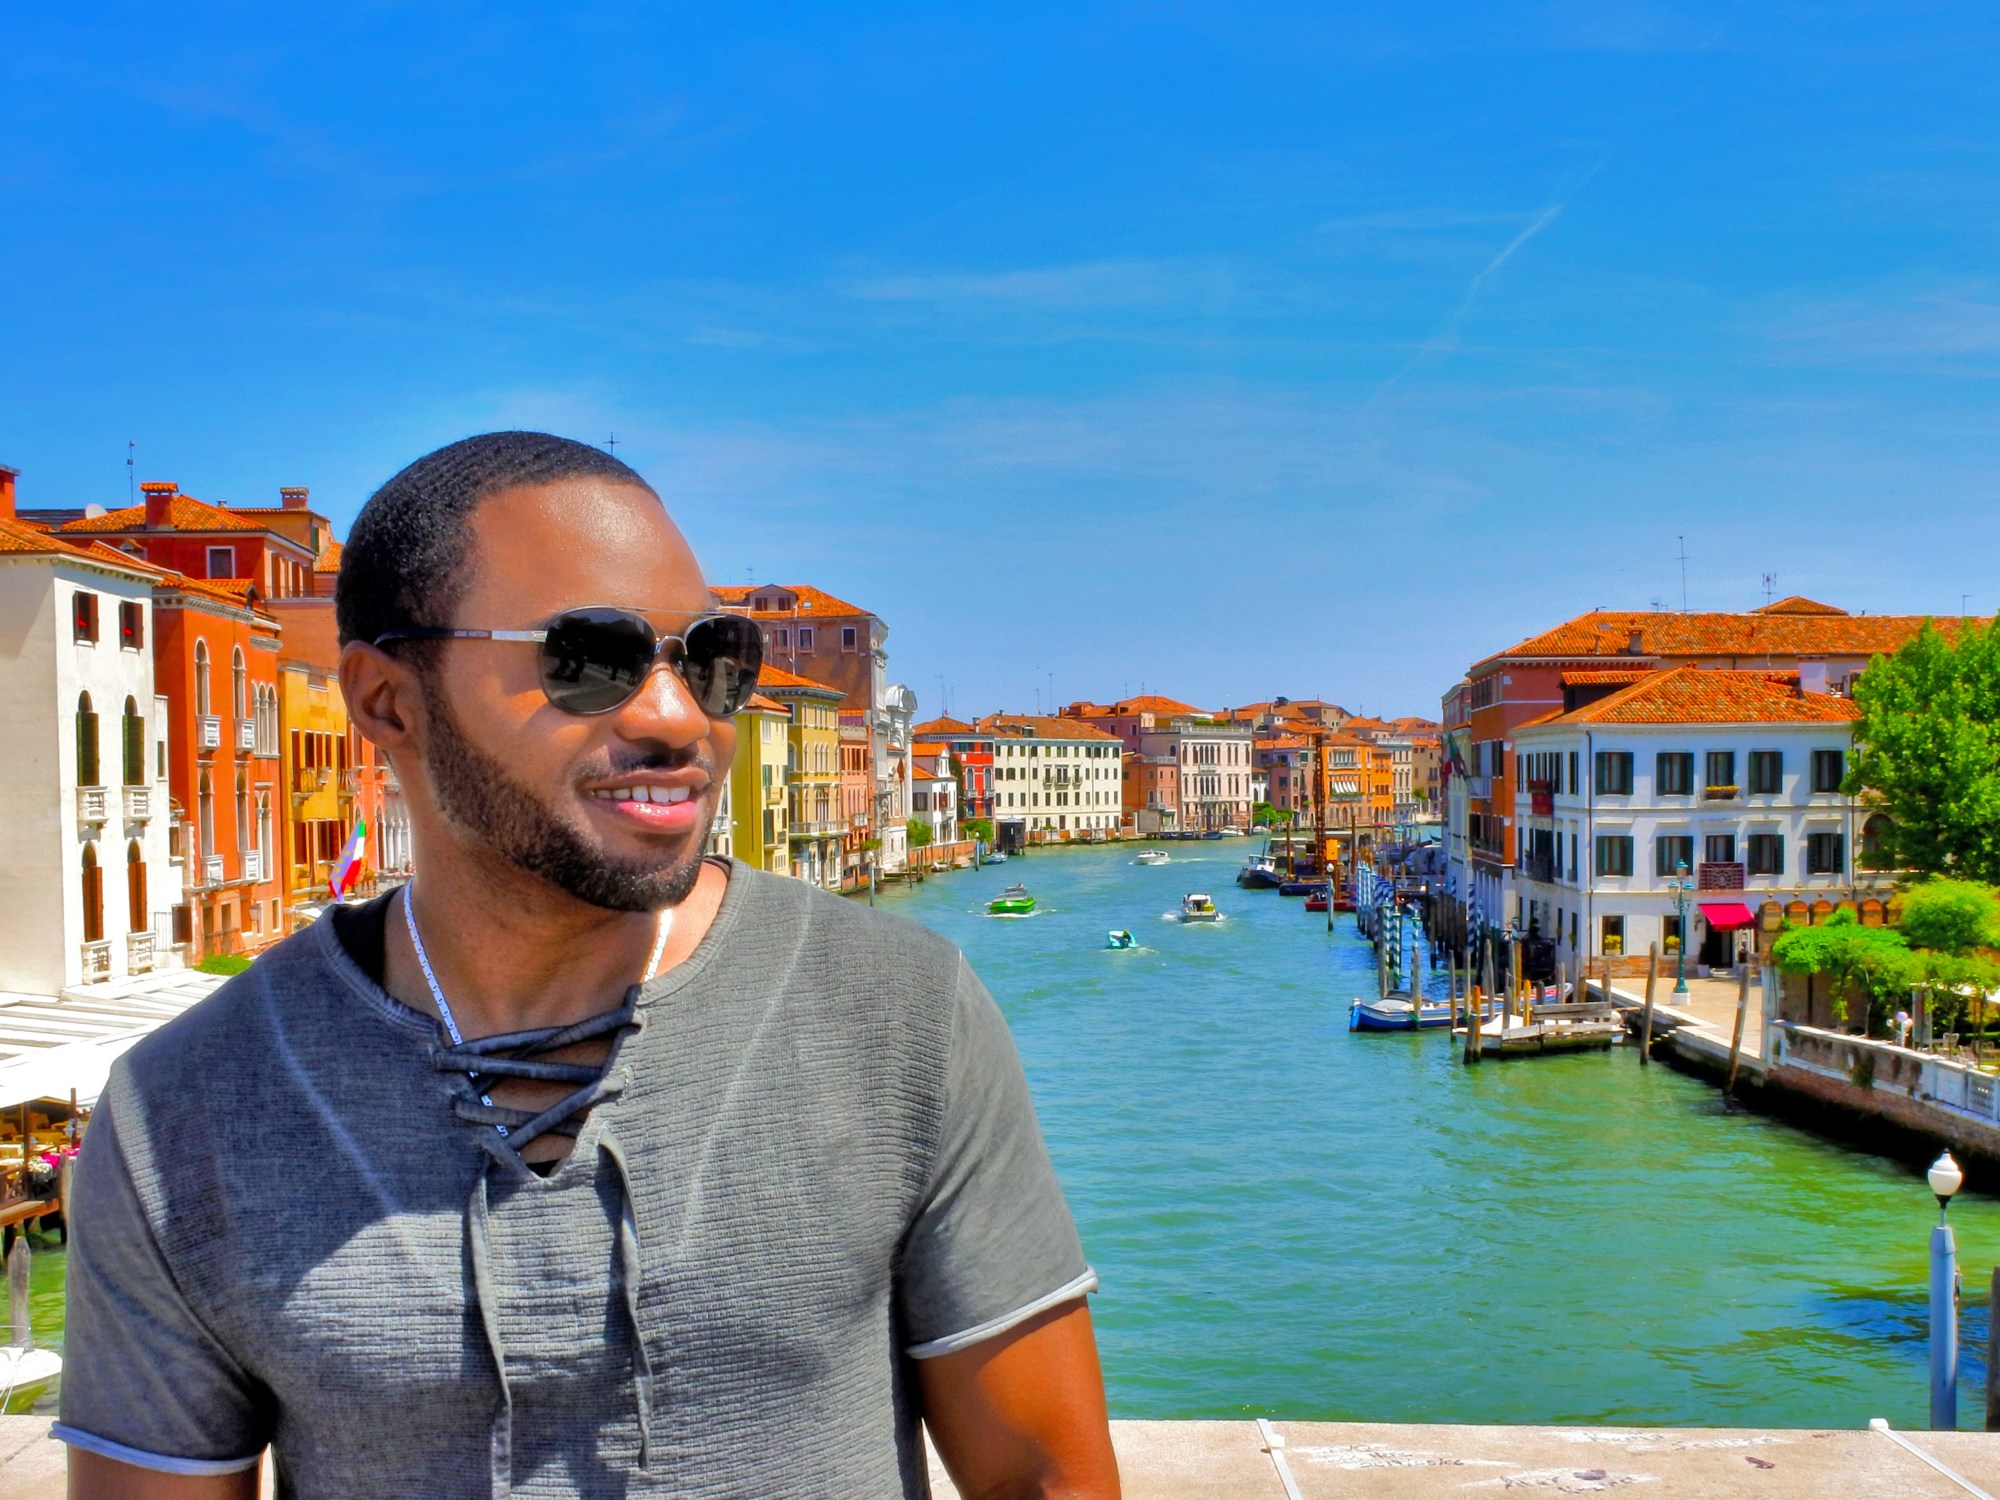 Celebrity music producer and influencer Tyrone Smith overlooking Grand Canal in Venice Italy